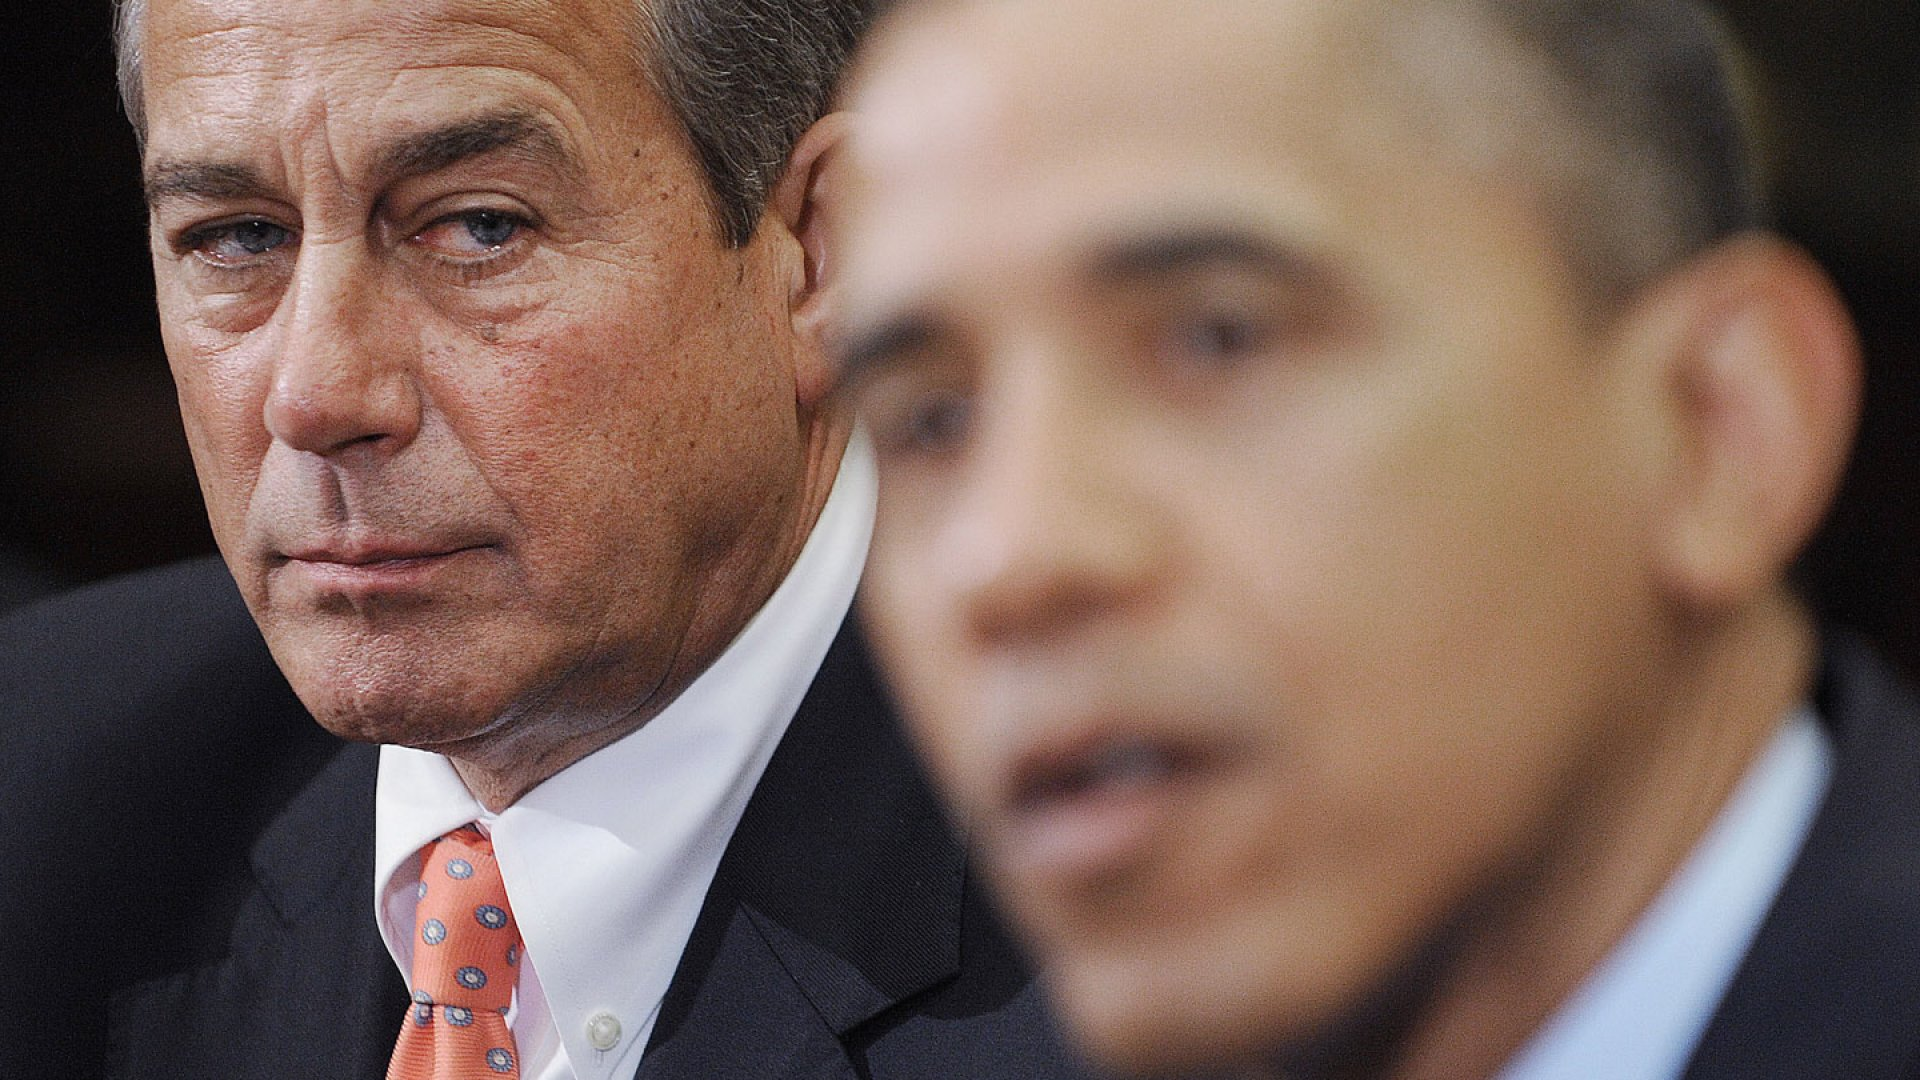 Speaker of the House John Boehner listens as U.S. President Barack Obama speaks during a meeting with bipartisan group of congressional leaders in the Roosevelt Room of the White House on November 16, 2012 in Washington, DC.